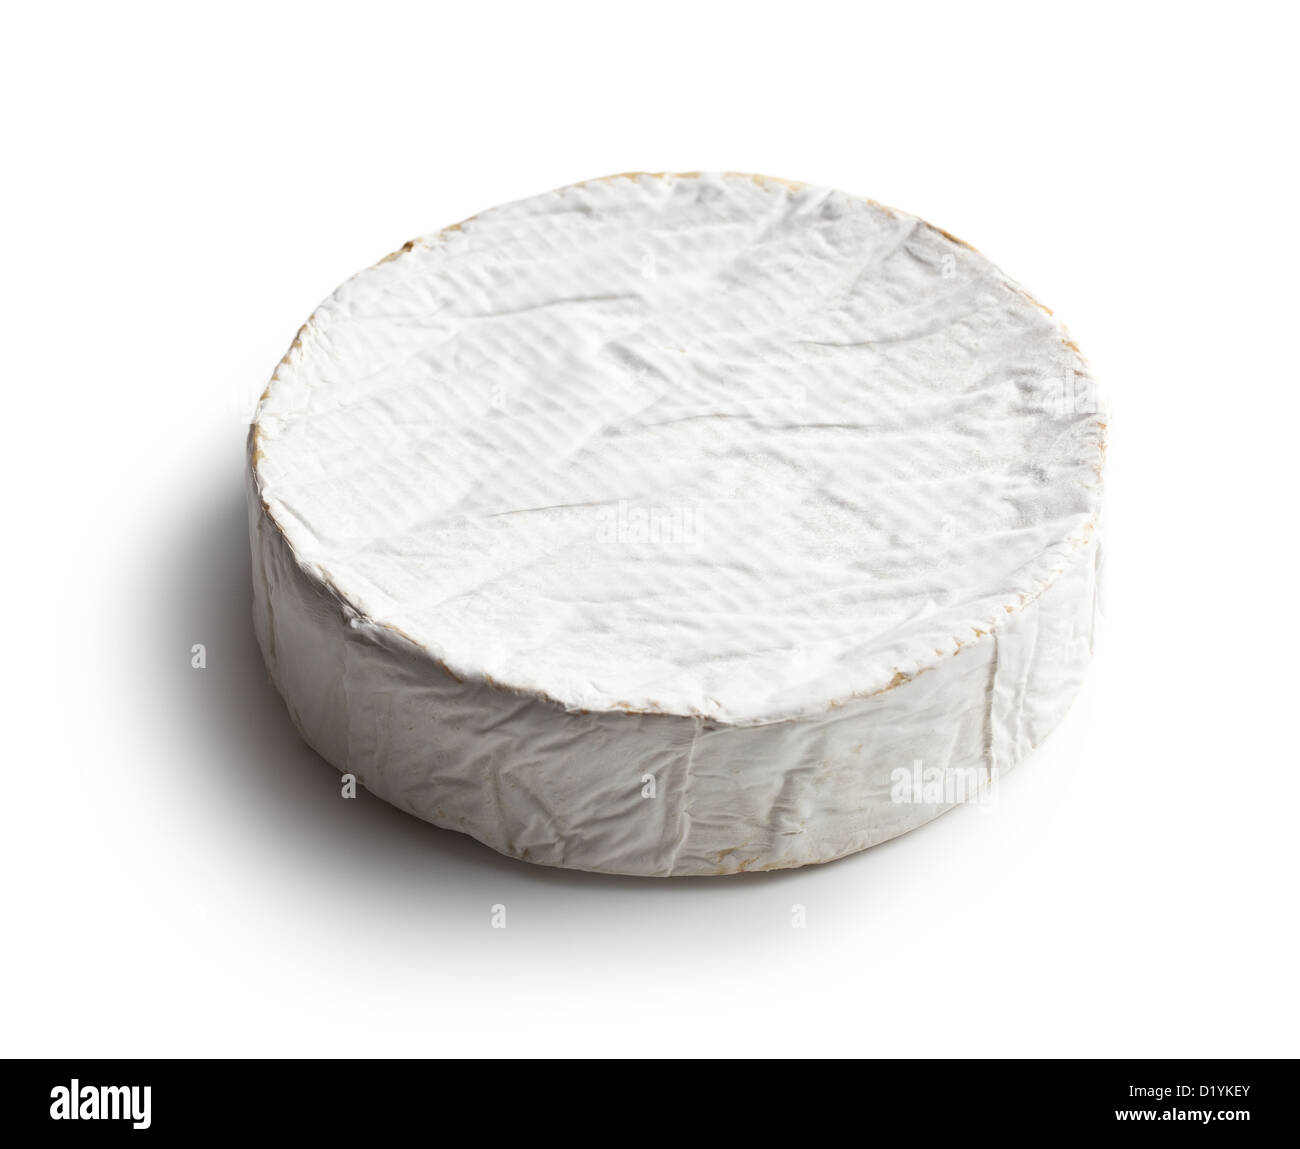 camembert cheese on white background - Stock Image